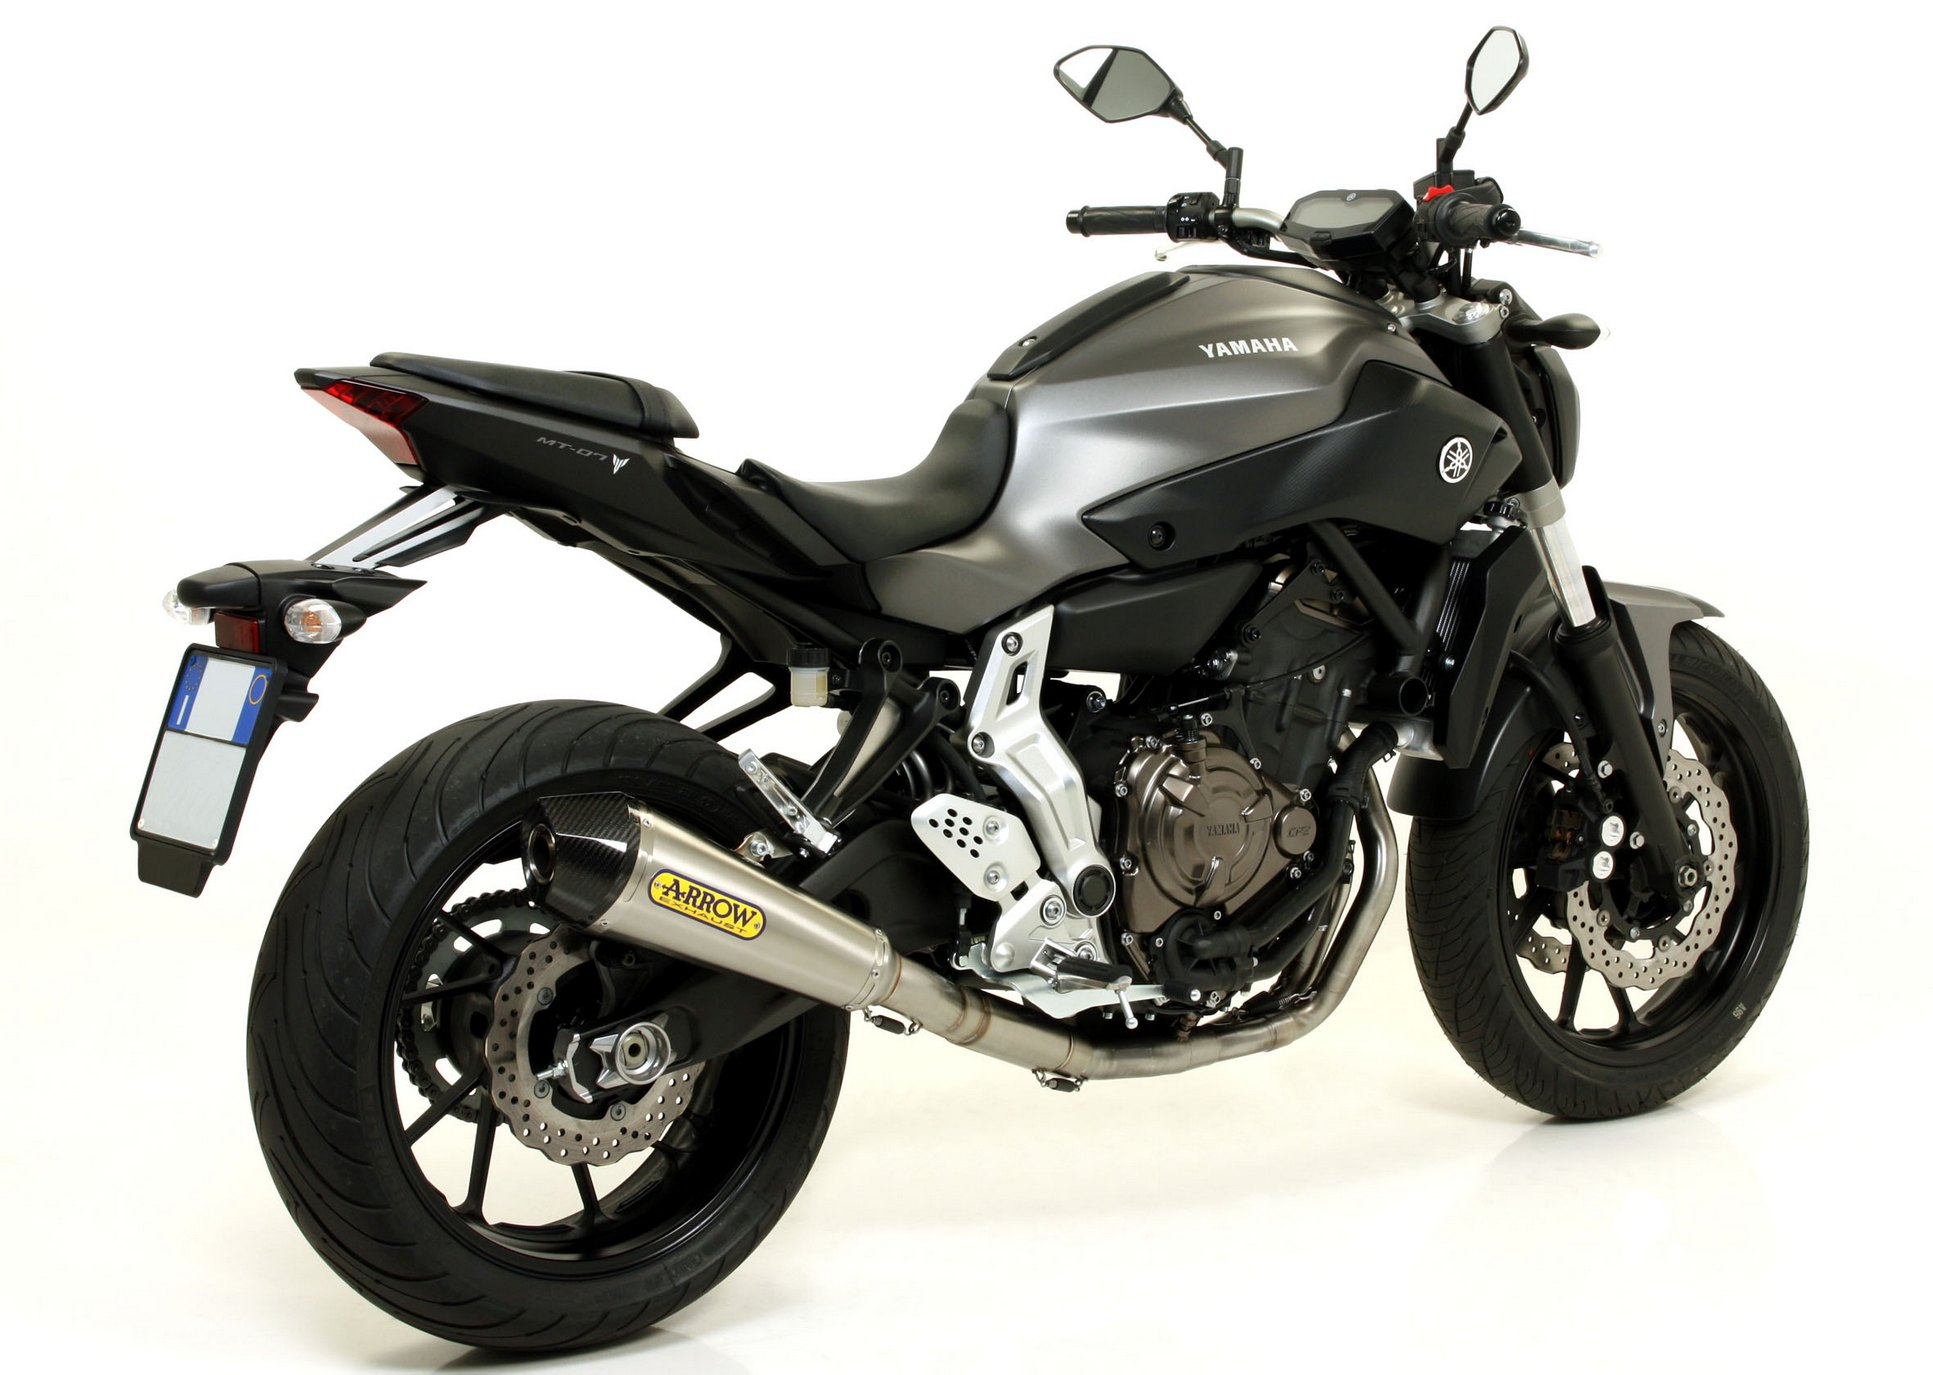 2014 yamaha mt 07 receives arrow exhaust upgrades. Black Bedroom Furniture Sets. Home Design Ideas